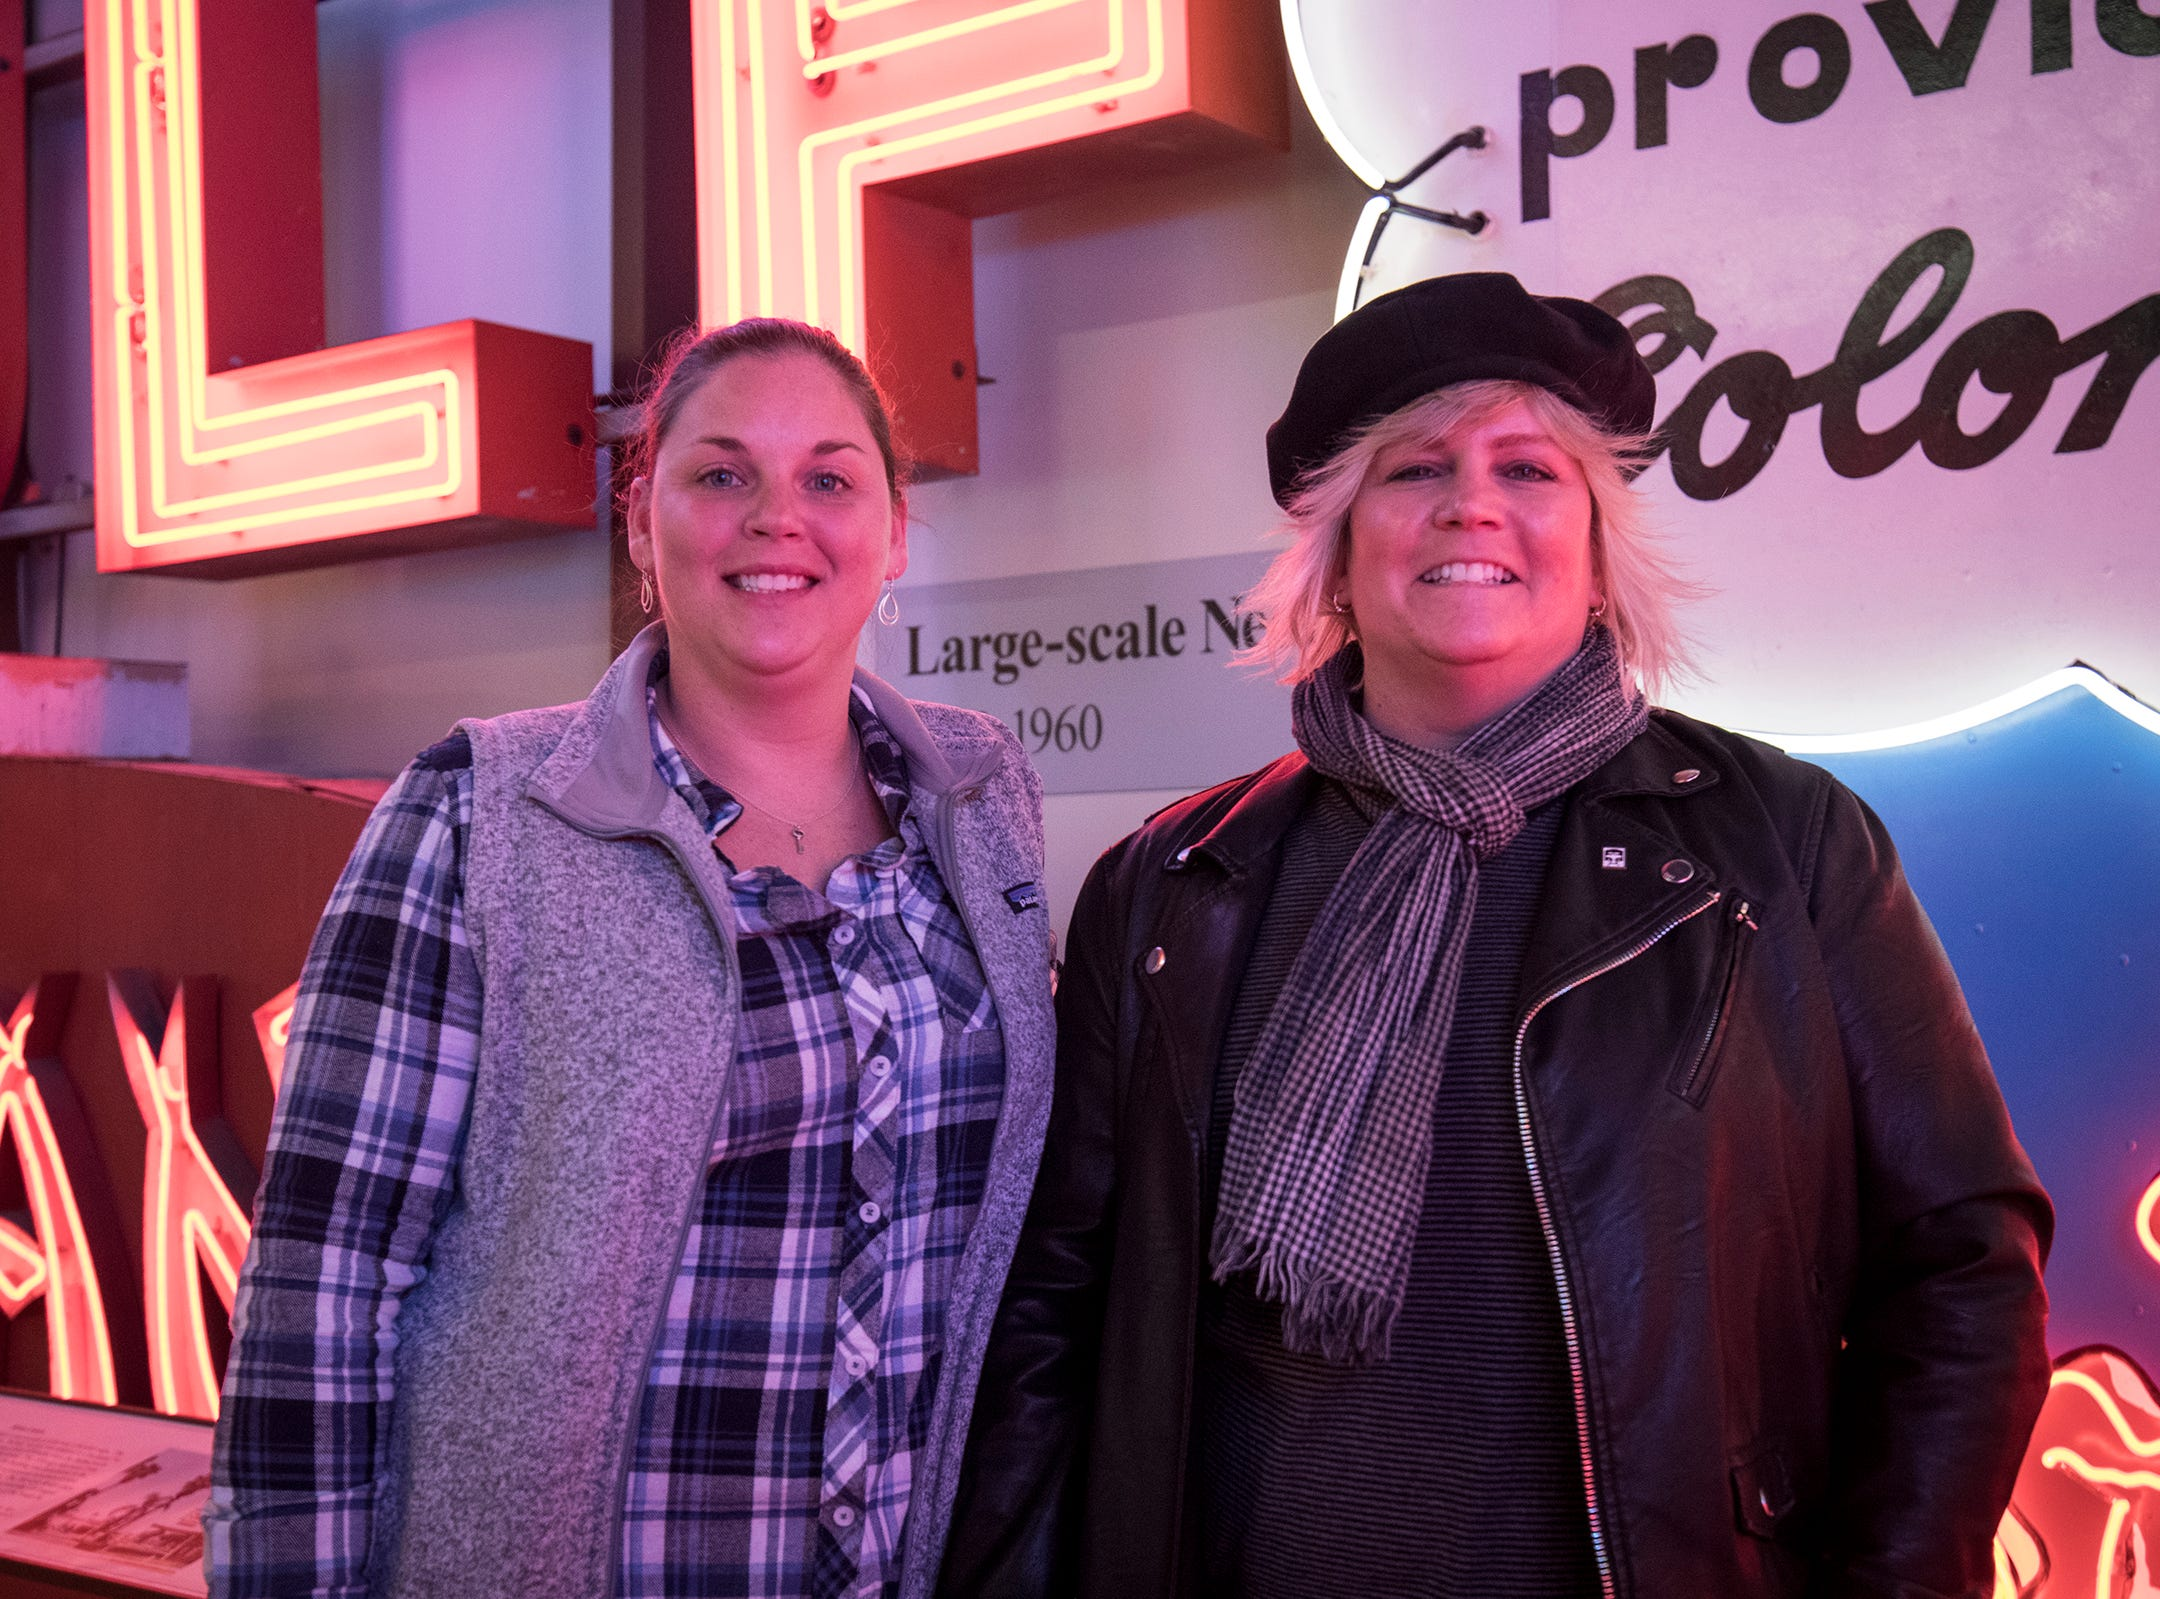 Jessica Back and Holly Harmon of West Chester attend Signs and Suds, featuring Rhinegeist beers at the American Sign Museum Thursday, January 24, 2019 in Cincinnati, Ohio.